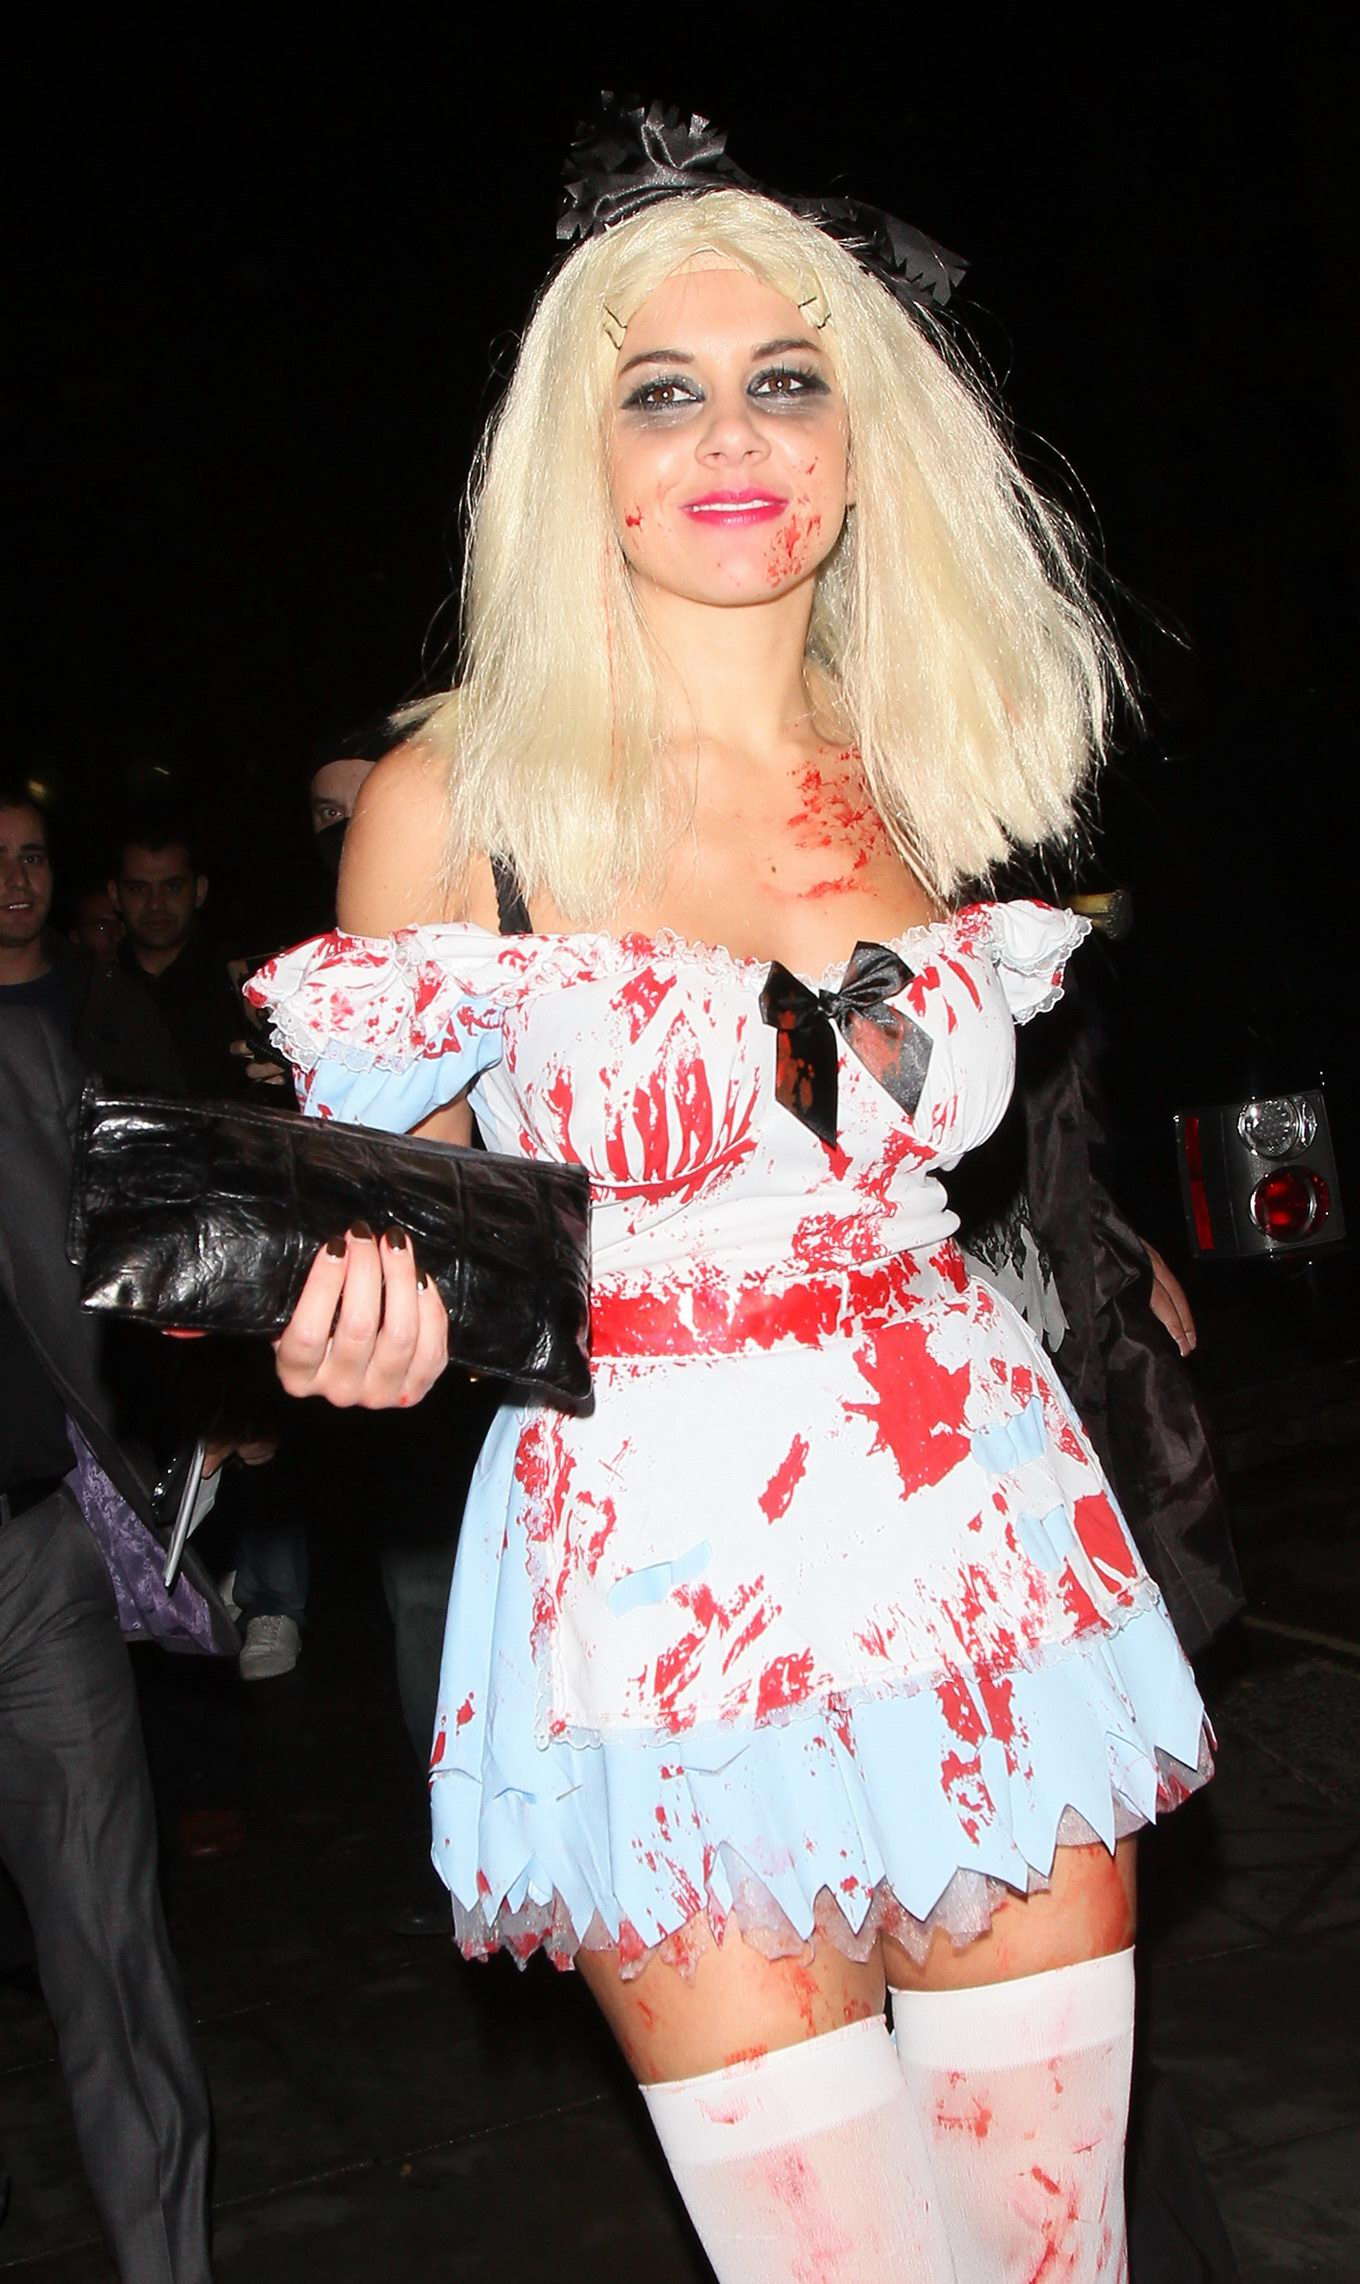 Naughty see through adult halloween costumes